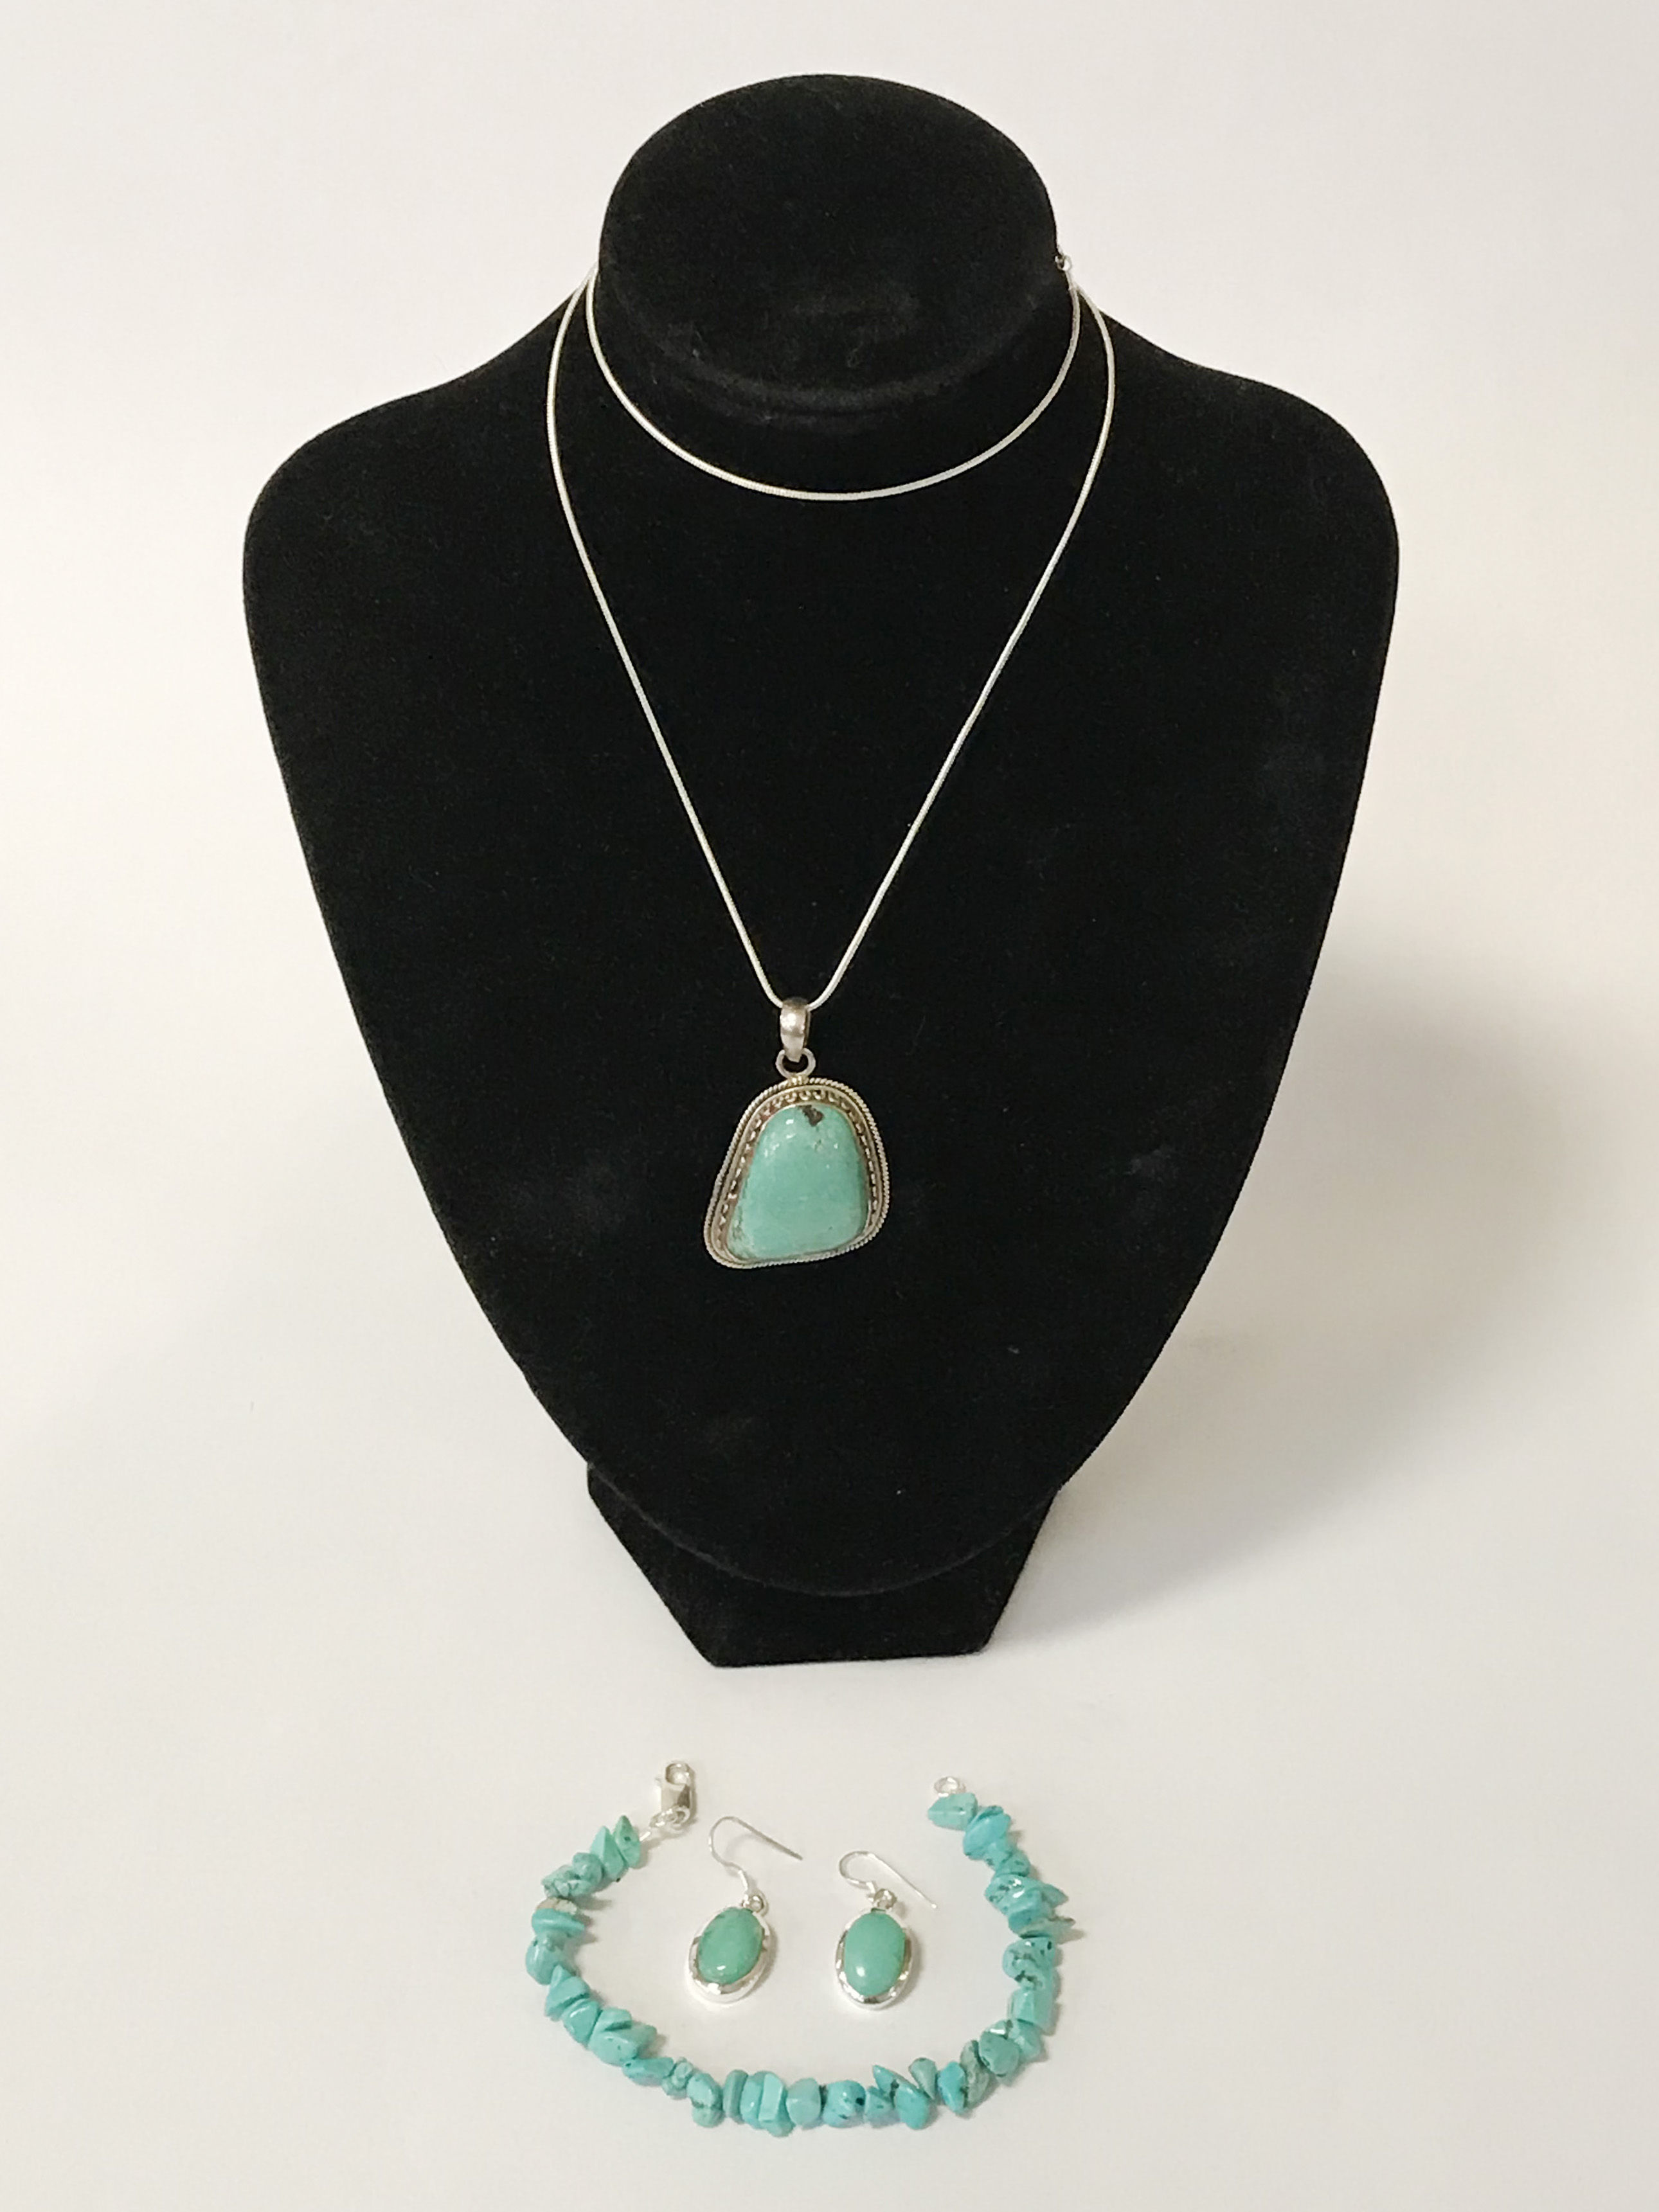 STERLING SILVER TURQUOISE JEWELLERY